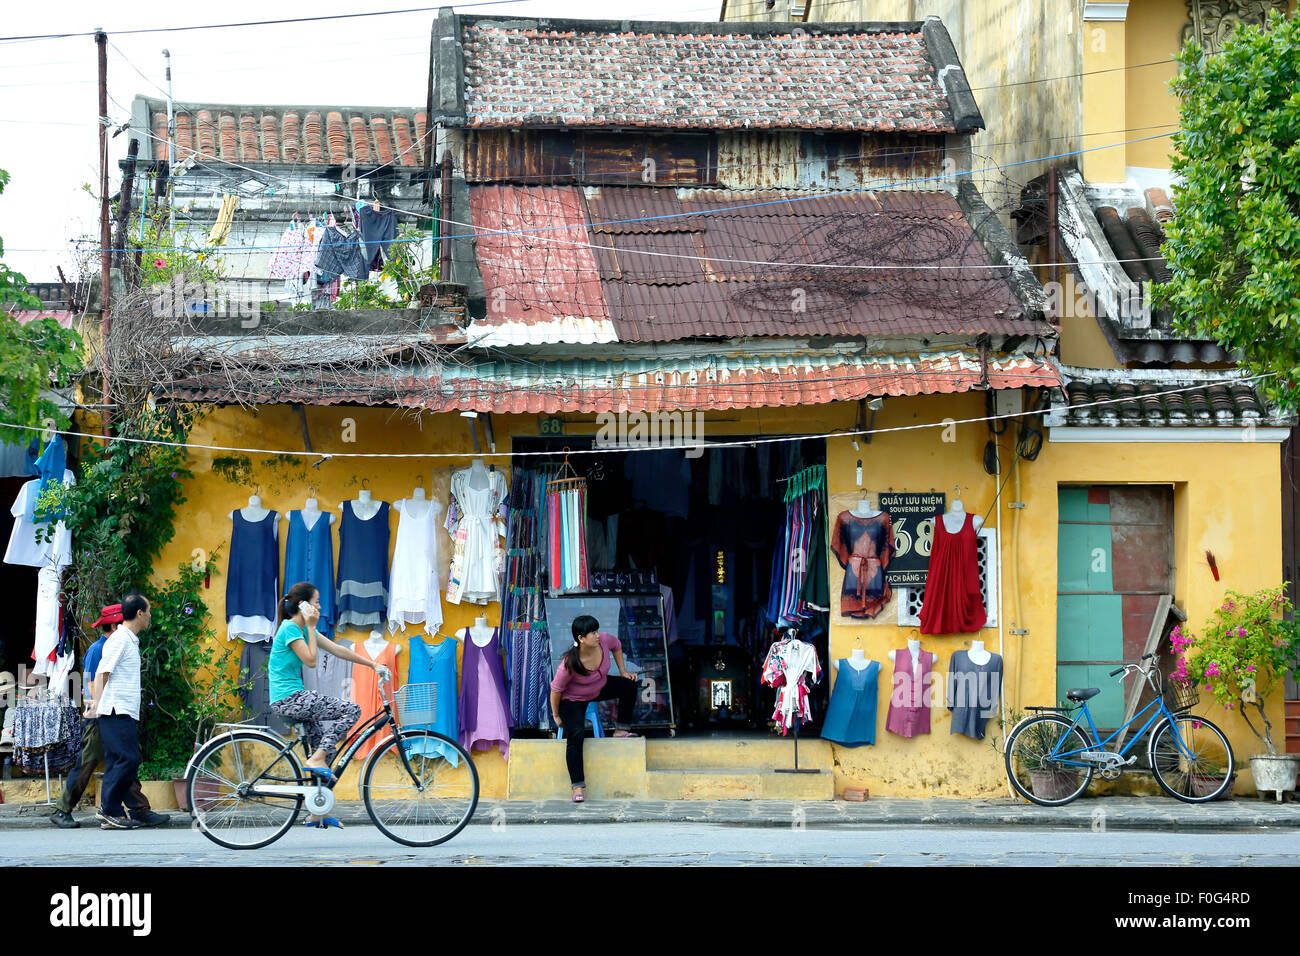 Woman cycling past clothing store, Hoi An, Vietnam - Stock Image